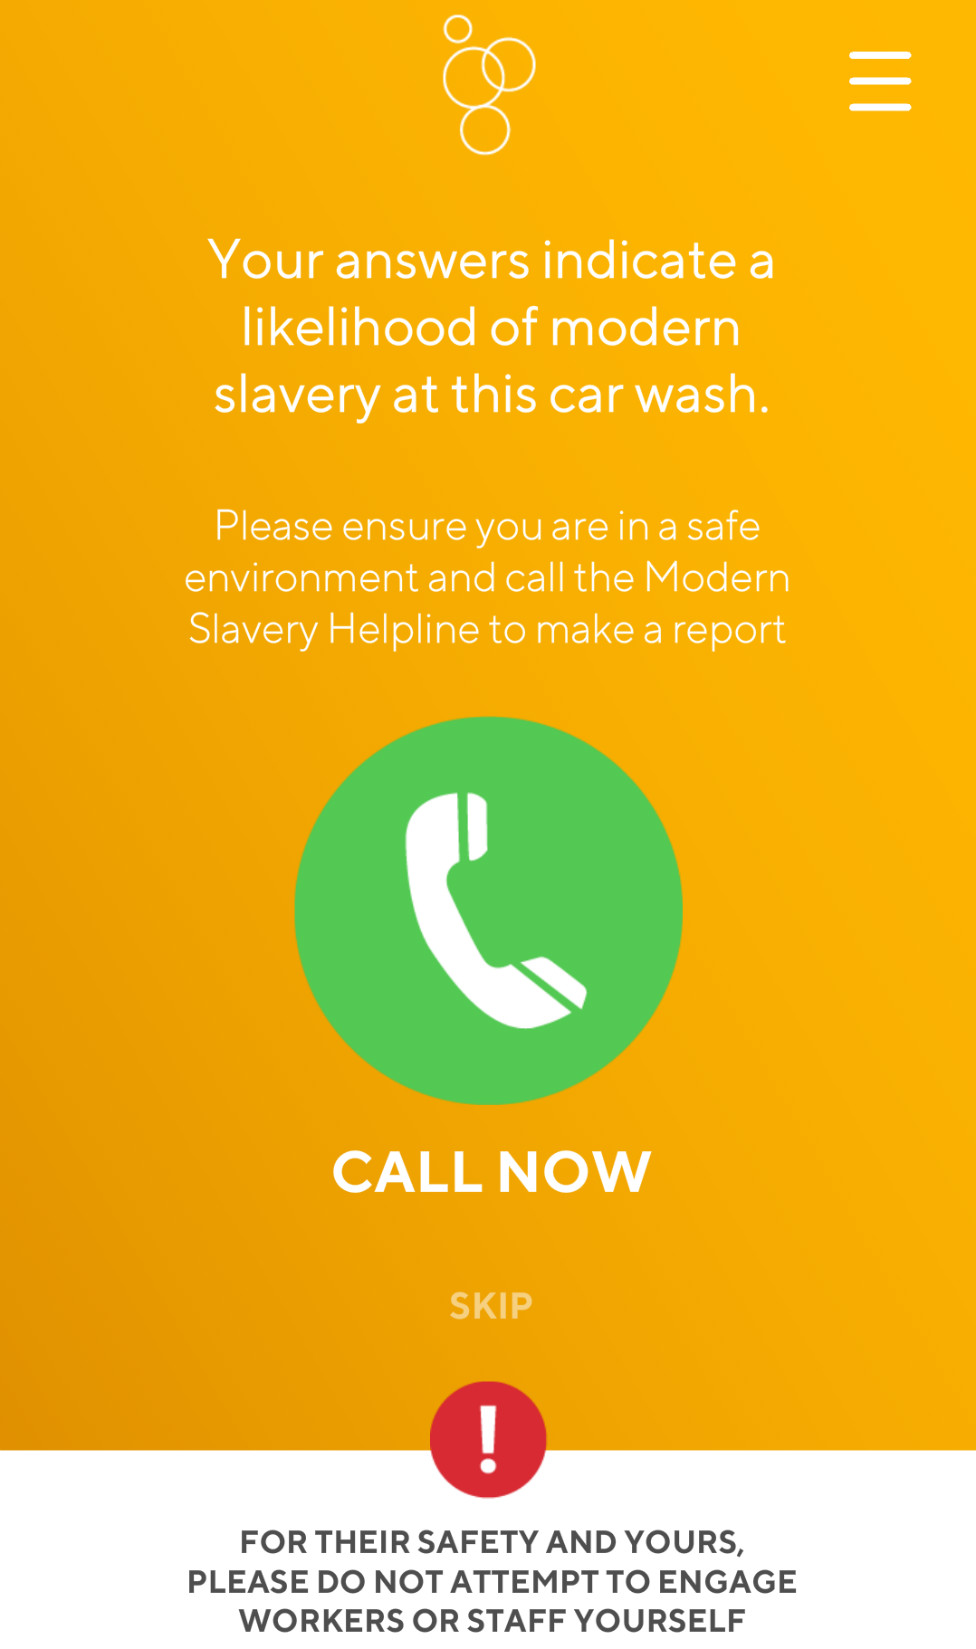 A screen from the Safe Car Wash App